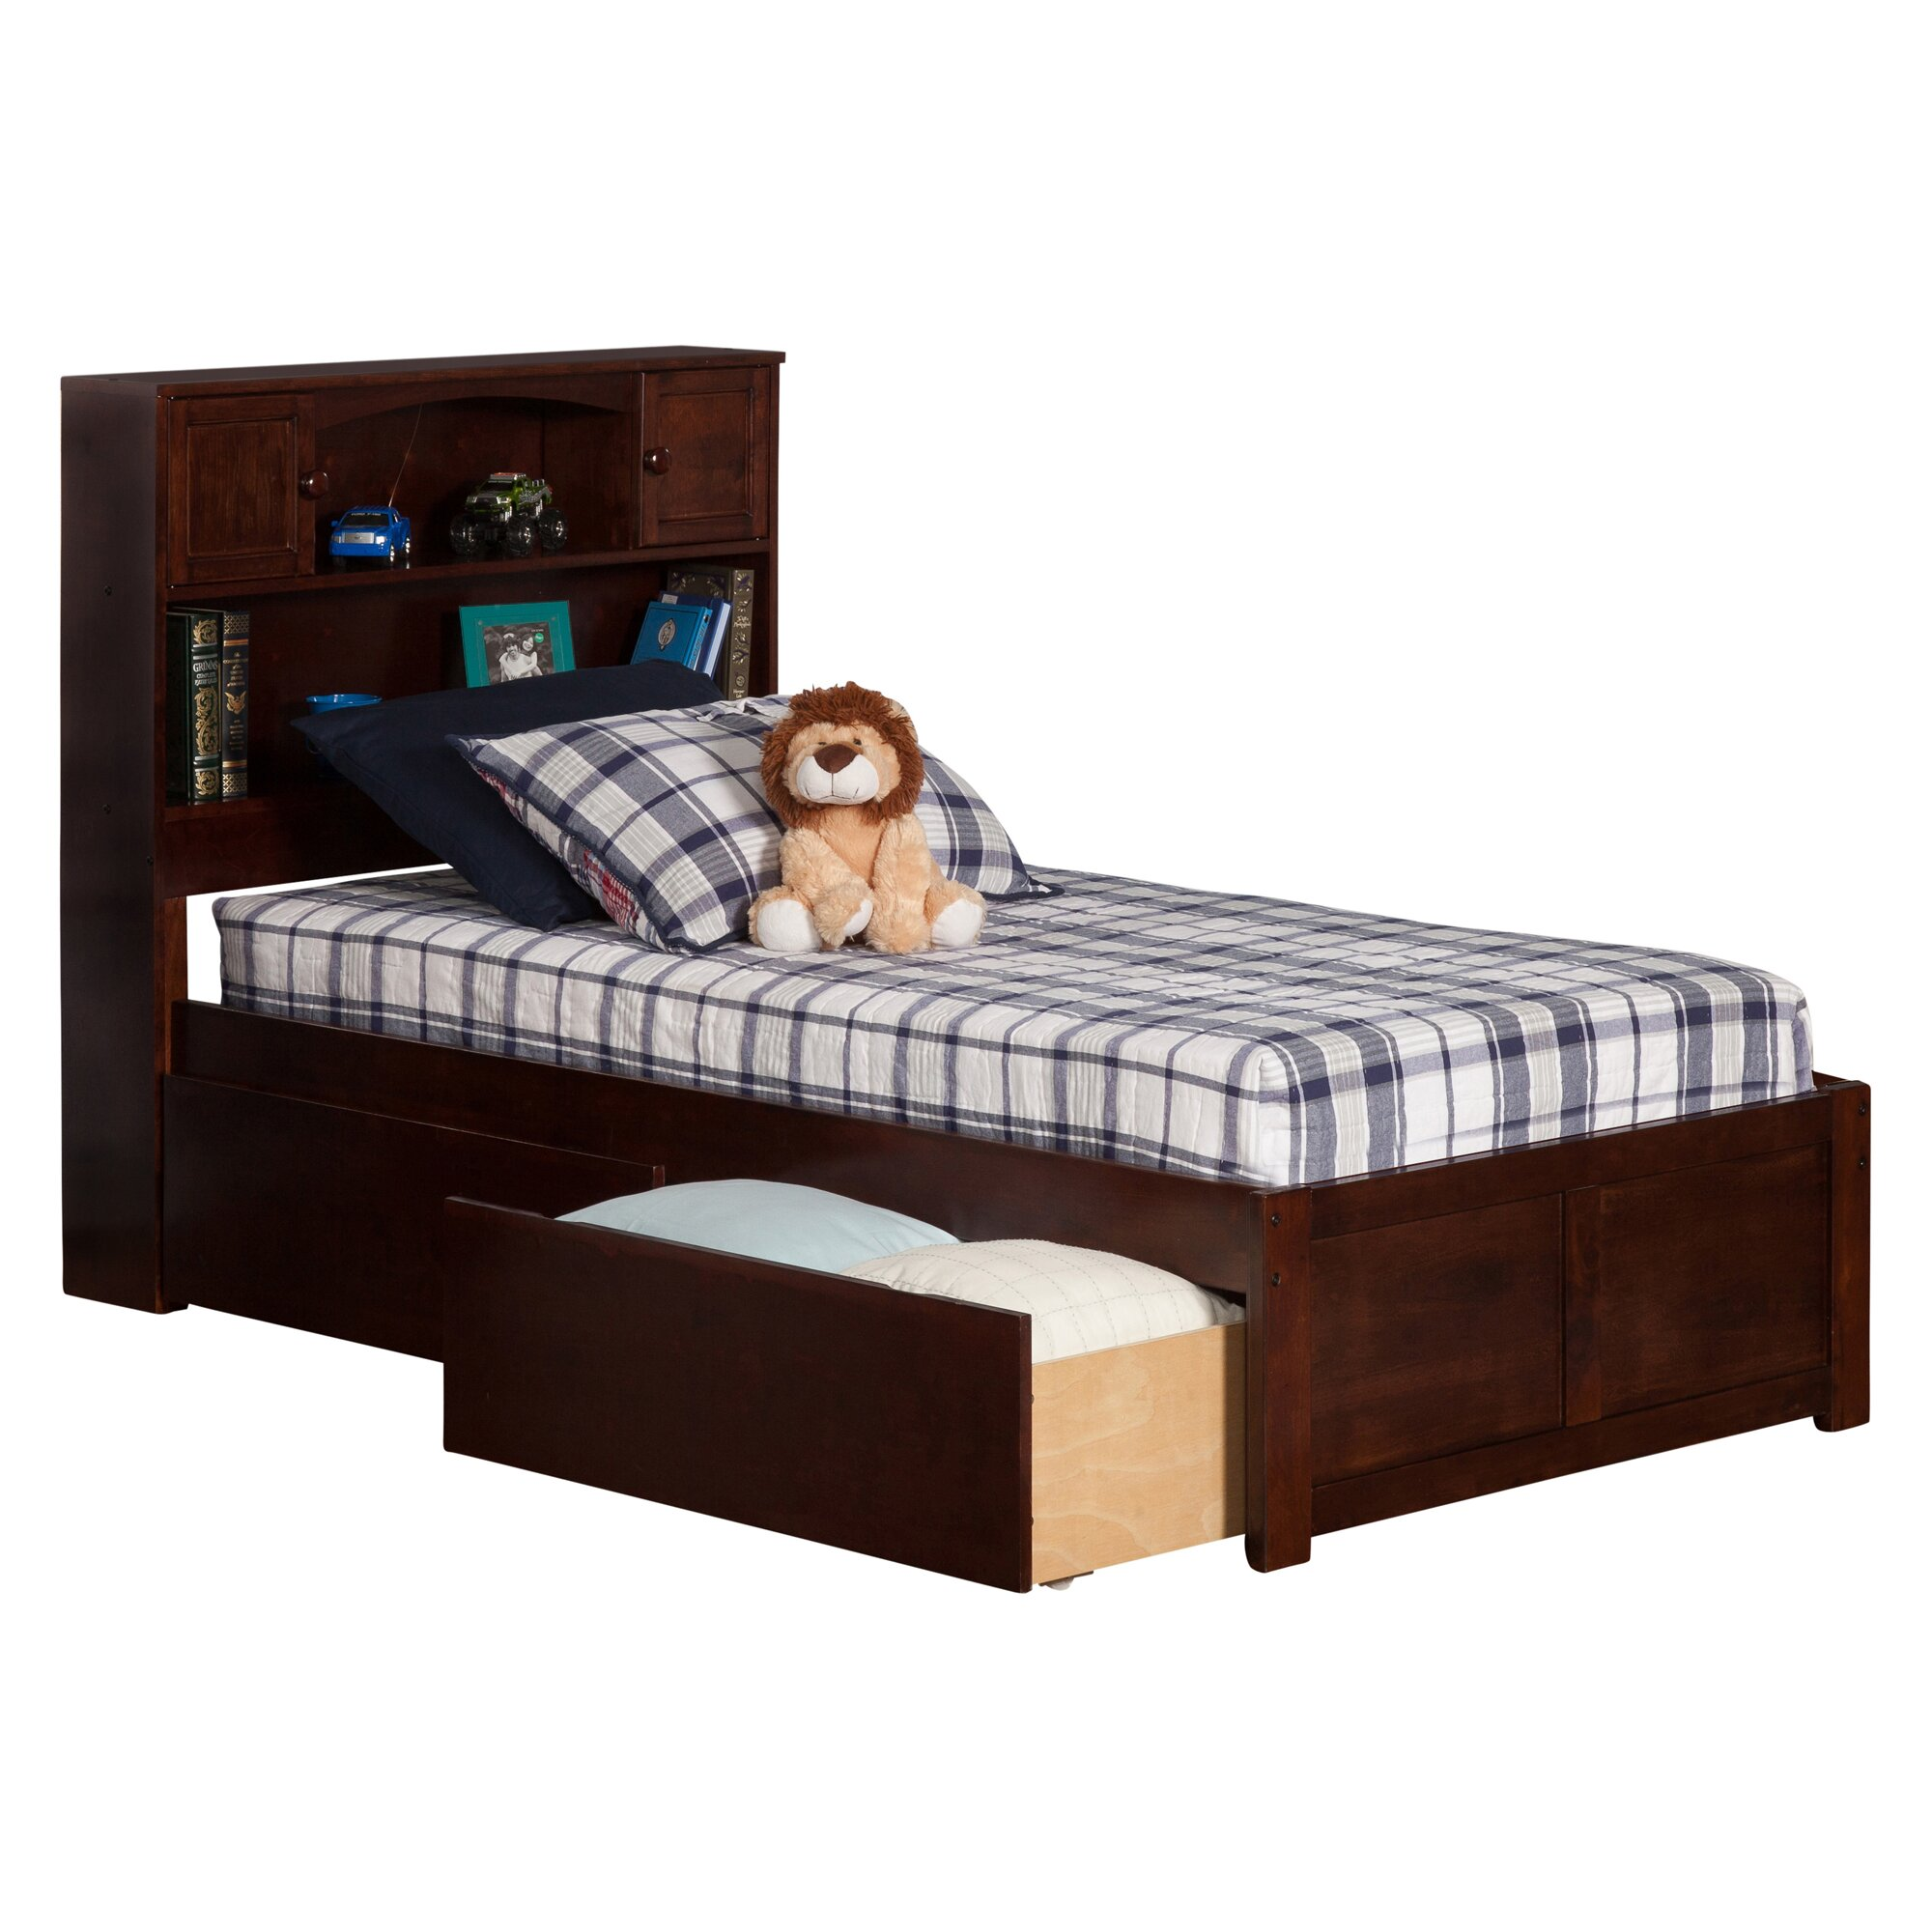 atlantic furniture newport extra long twin platform bed with storage reviews wayfair. Black Bedroom Furniture Sets. Home Design Ideas